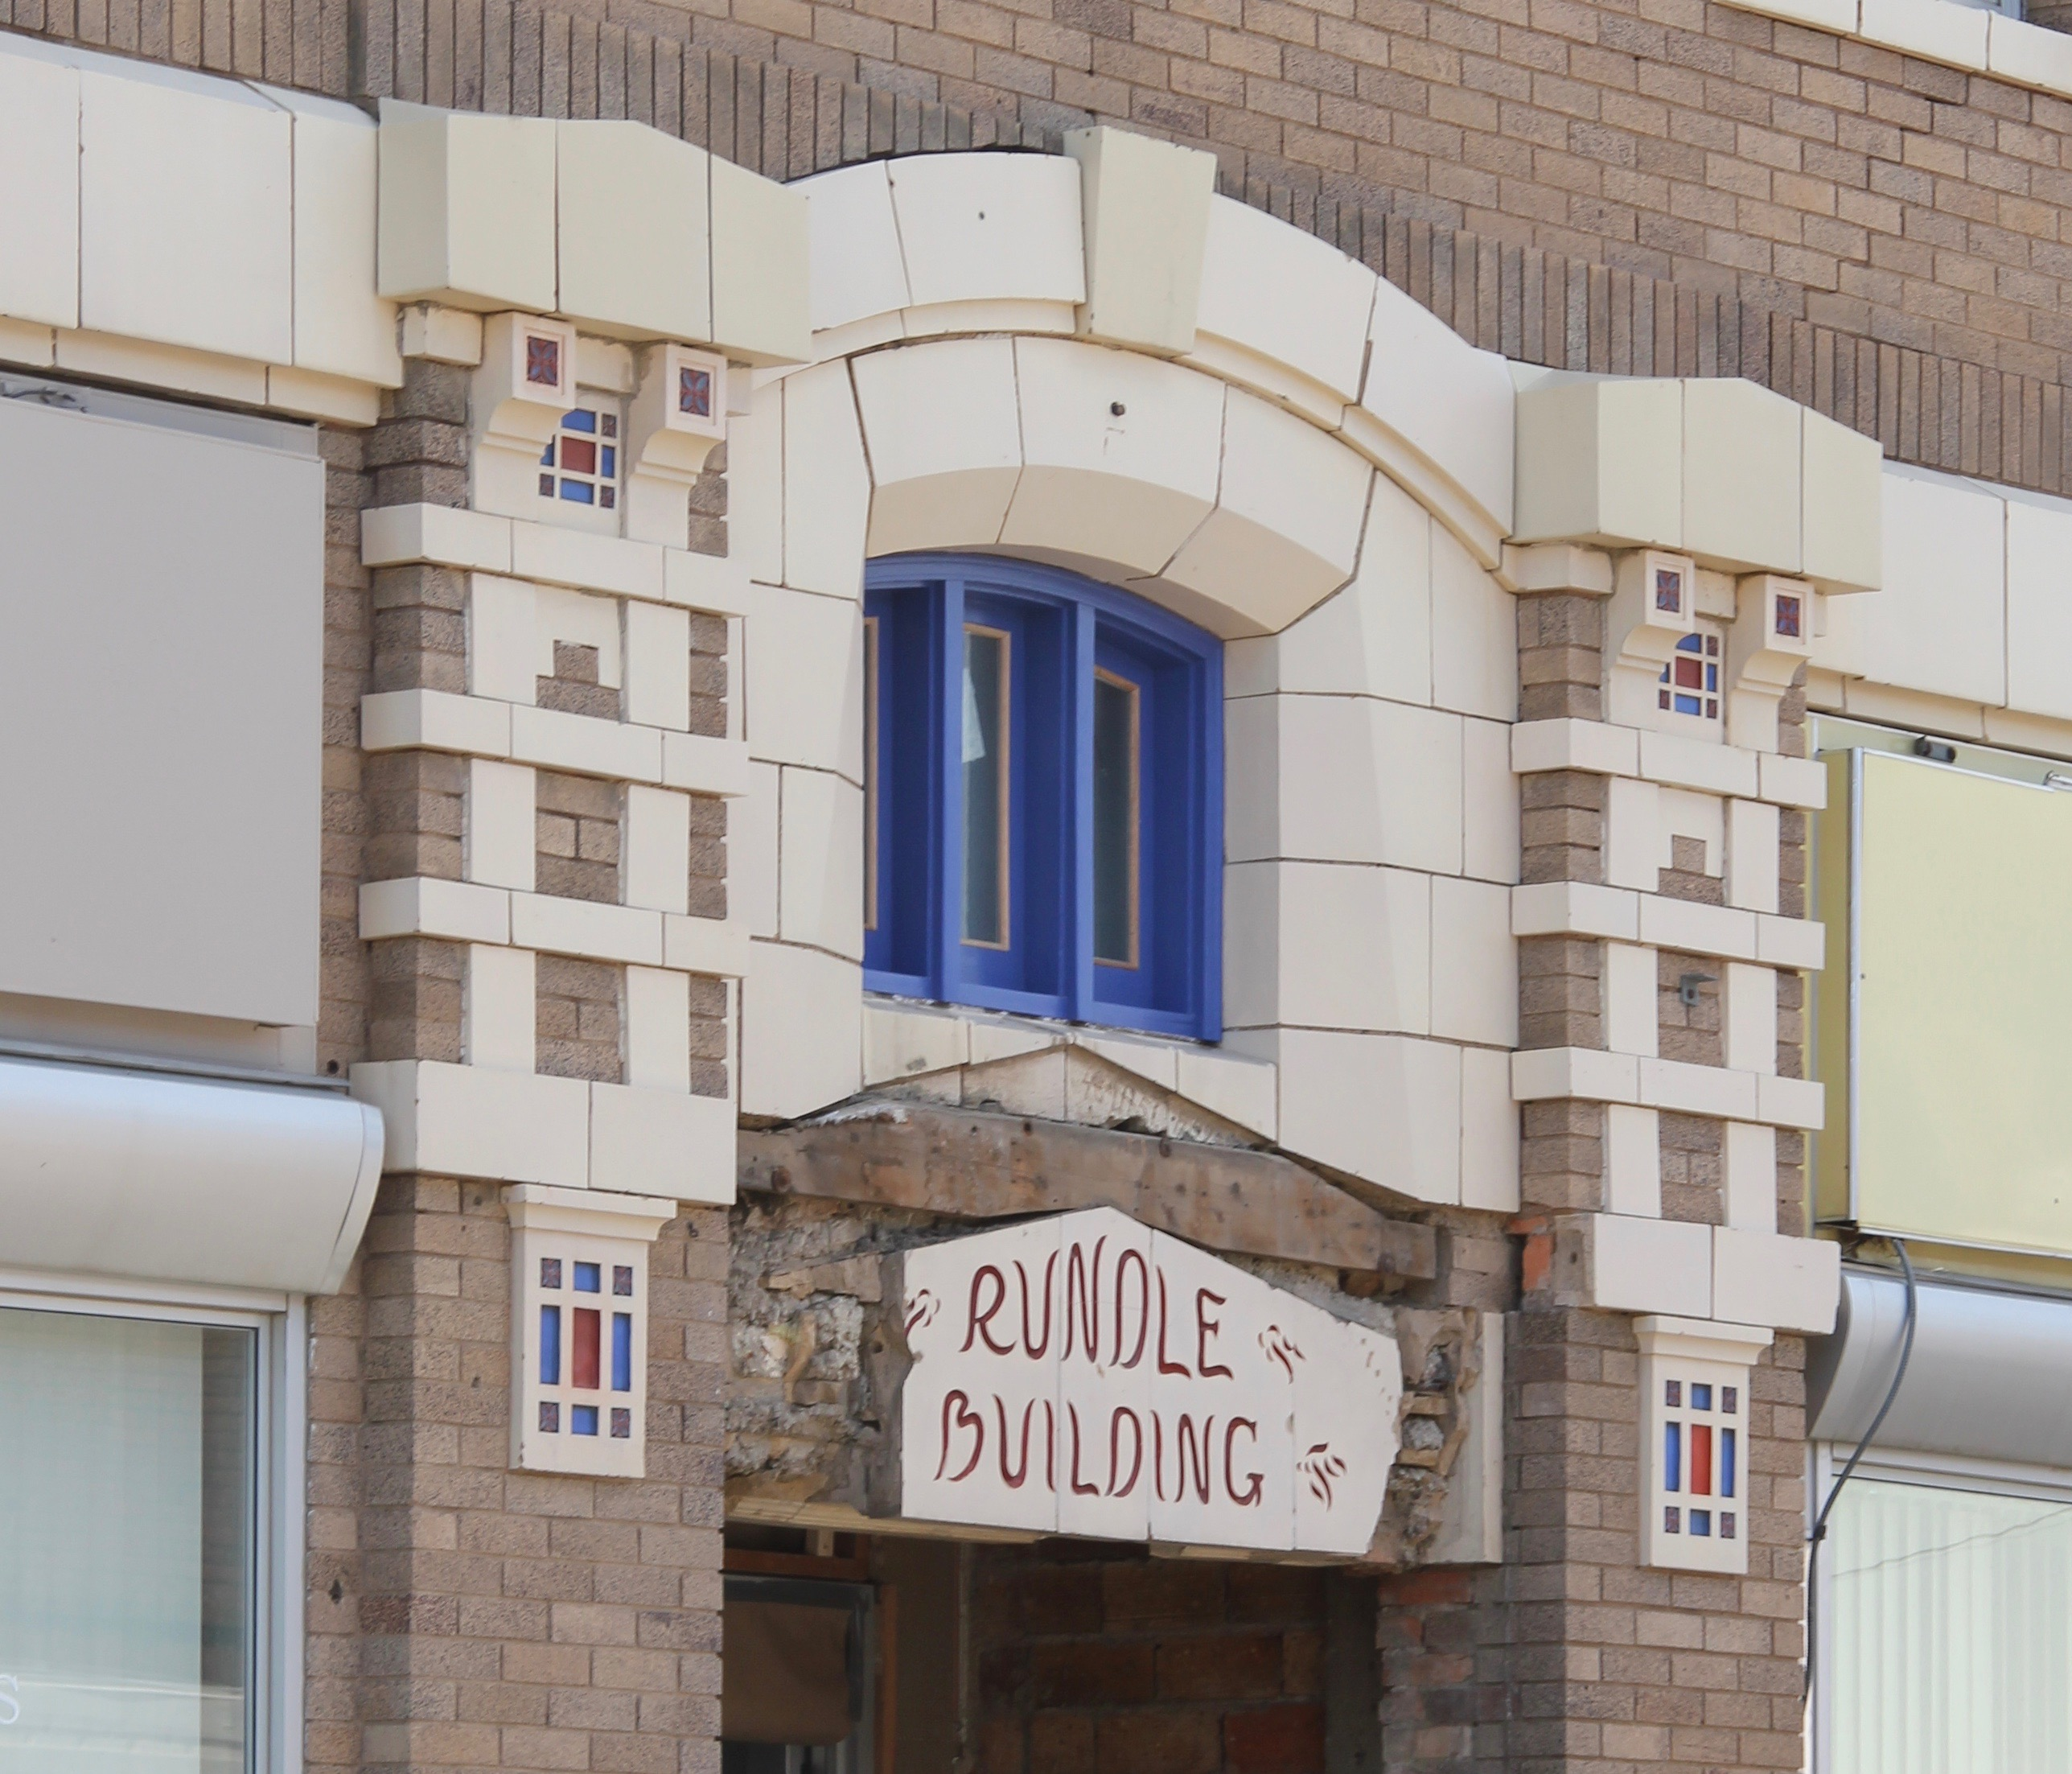 Valley Co Glasgow Art Deco Rundle building name